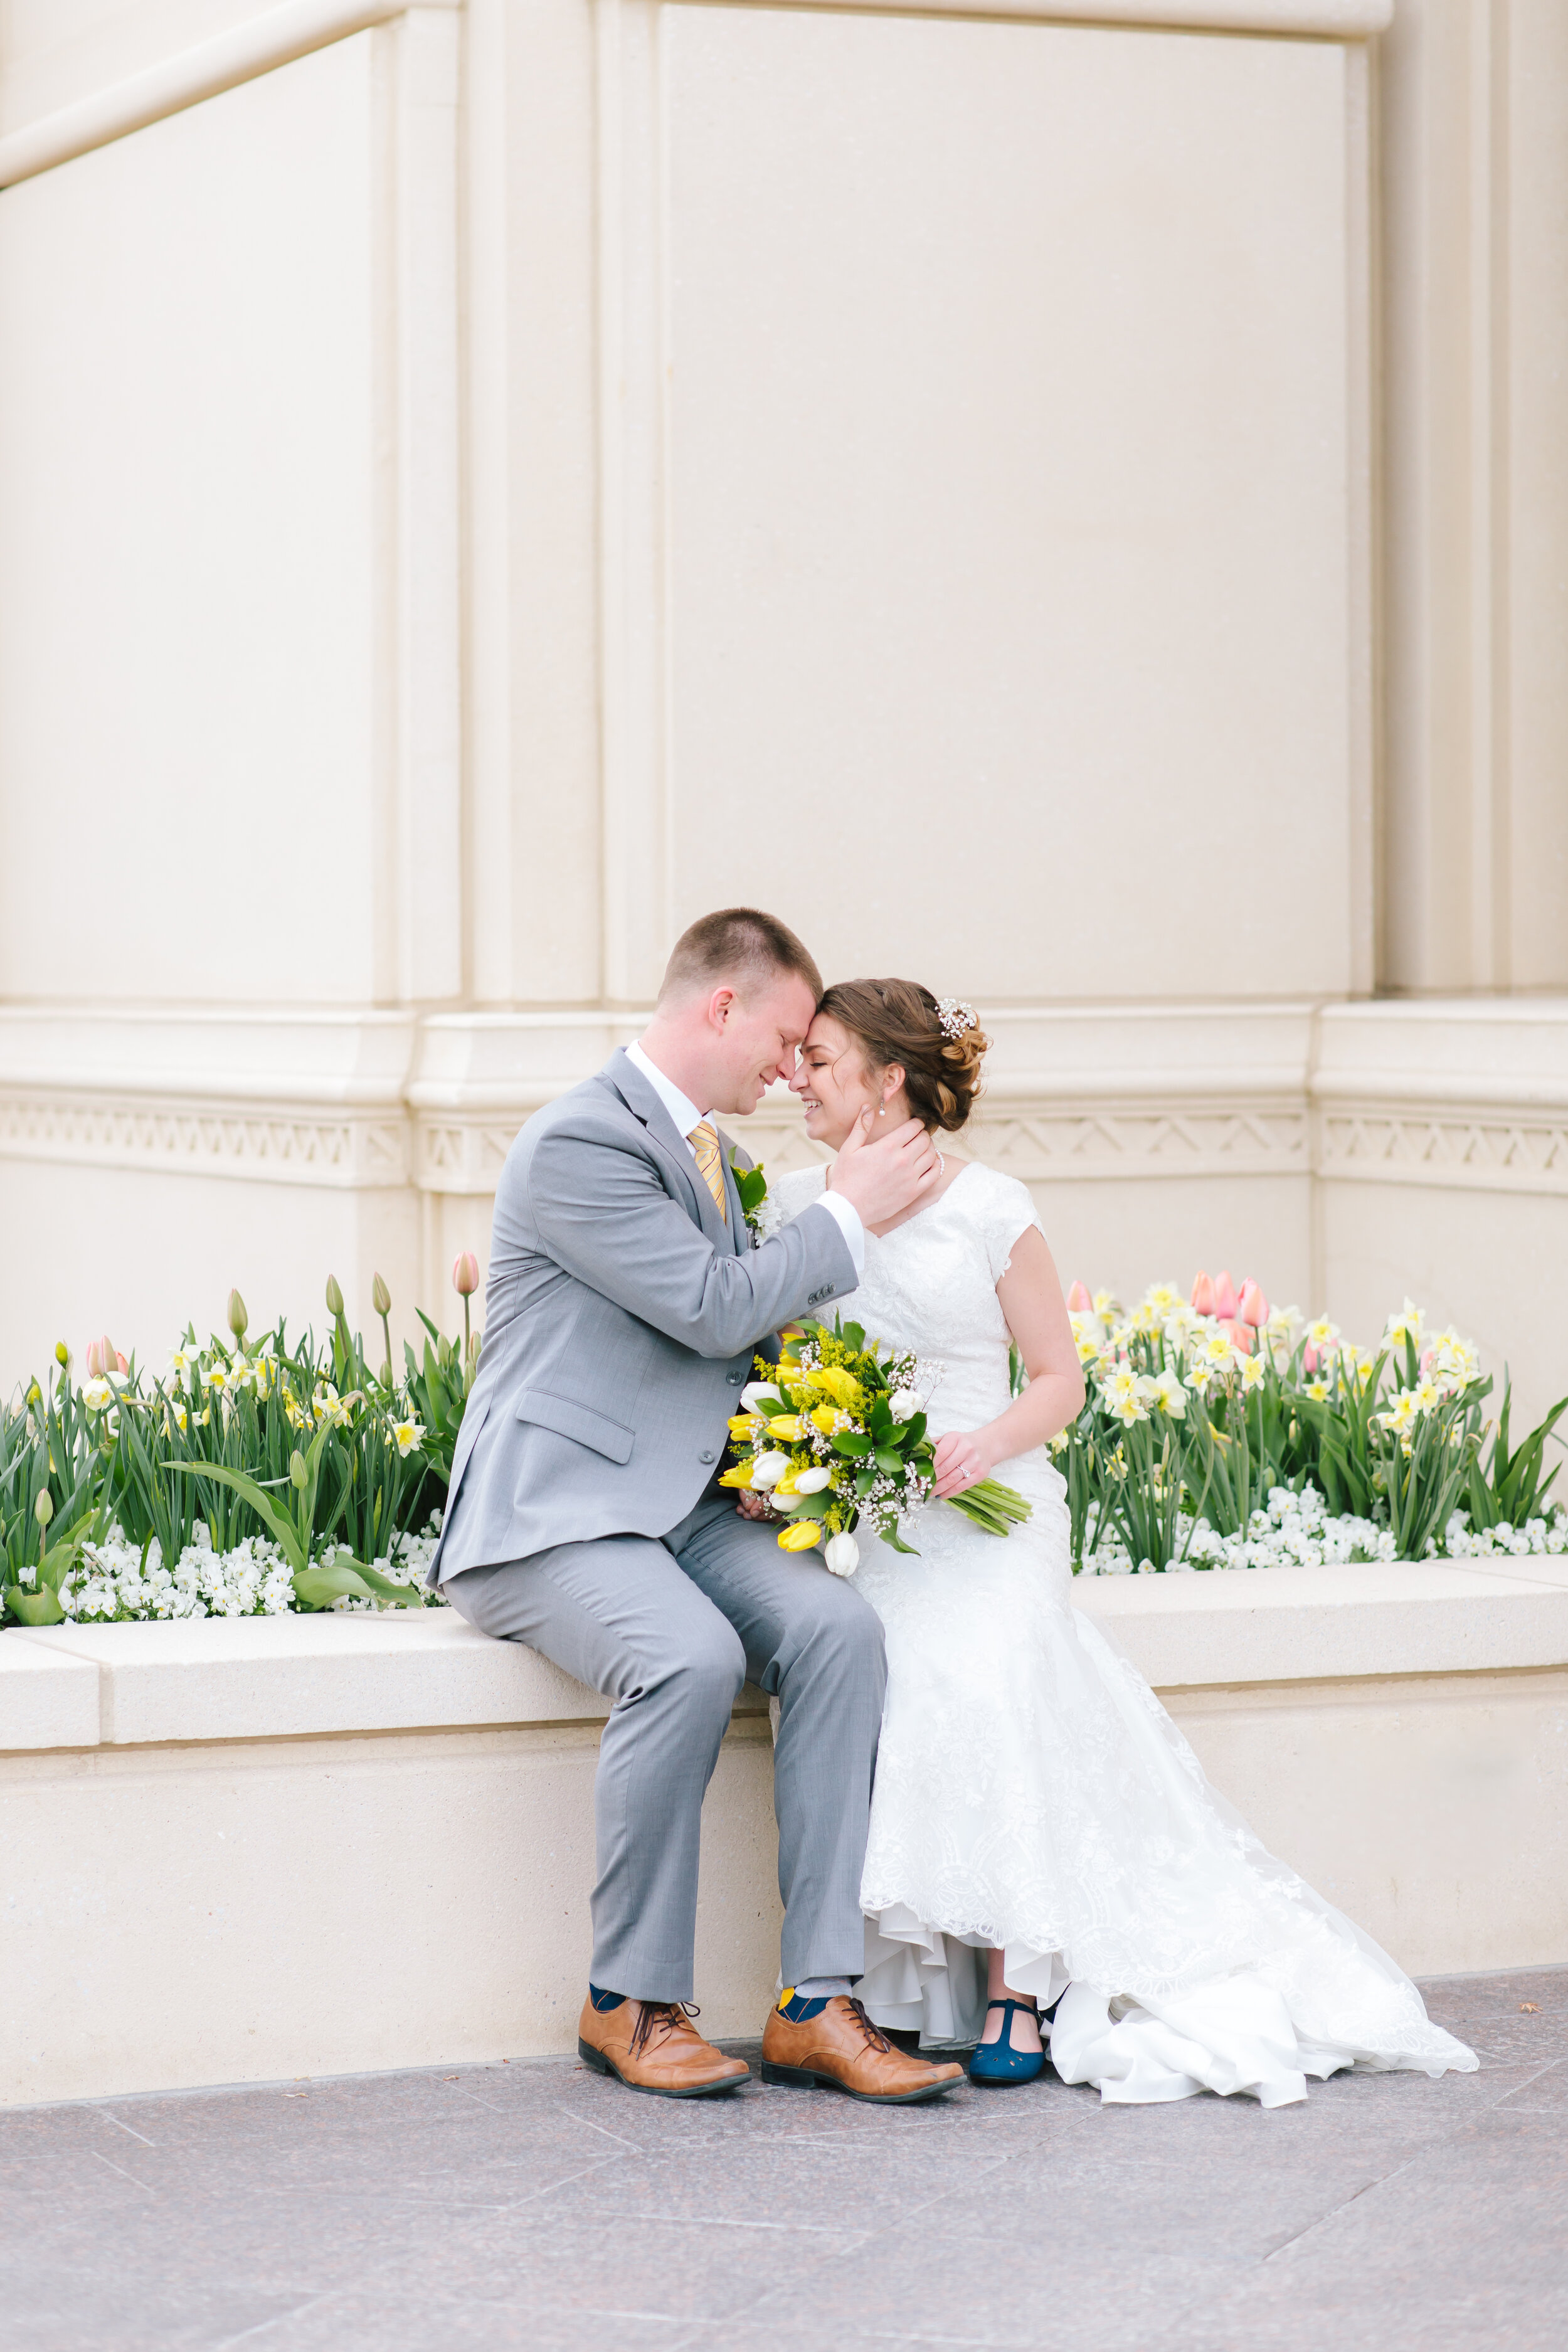 couple sitting pose inspiration temple grounds payson temple happy couple couple goals clarity lane professional photographer lds wedding session wedding picture inspiration man and wife love is in the air couple session beautiful bride and groom lds marriages #eternalbuddies #weddingsession #weddinginspo #ldswedding #ldsbride #couplegoals #paysontemple #temple #profressionalphotographer #utah #love